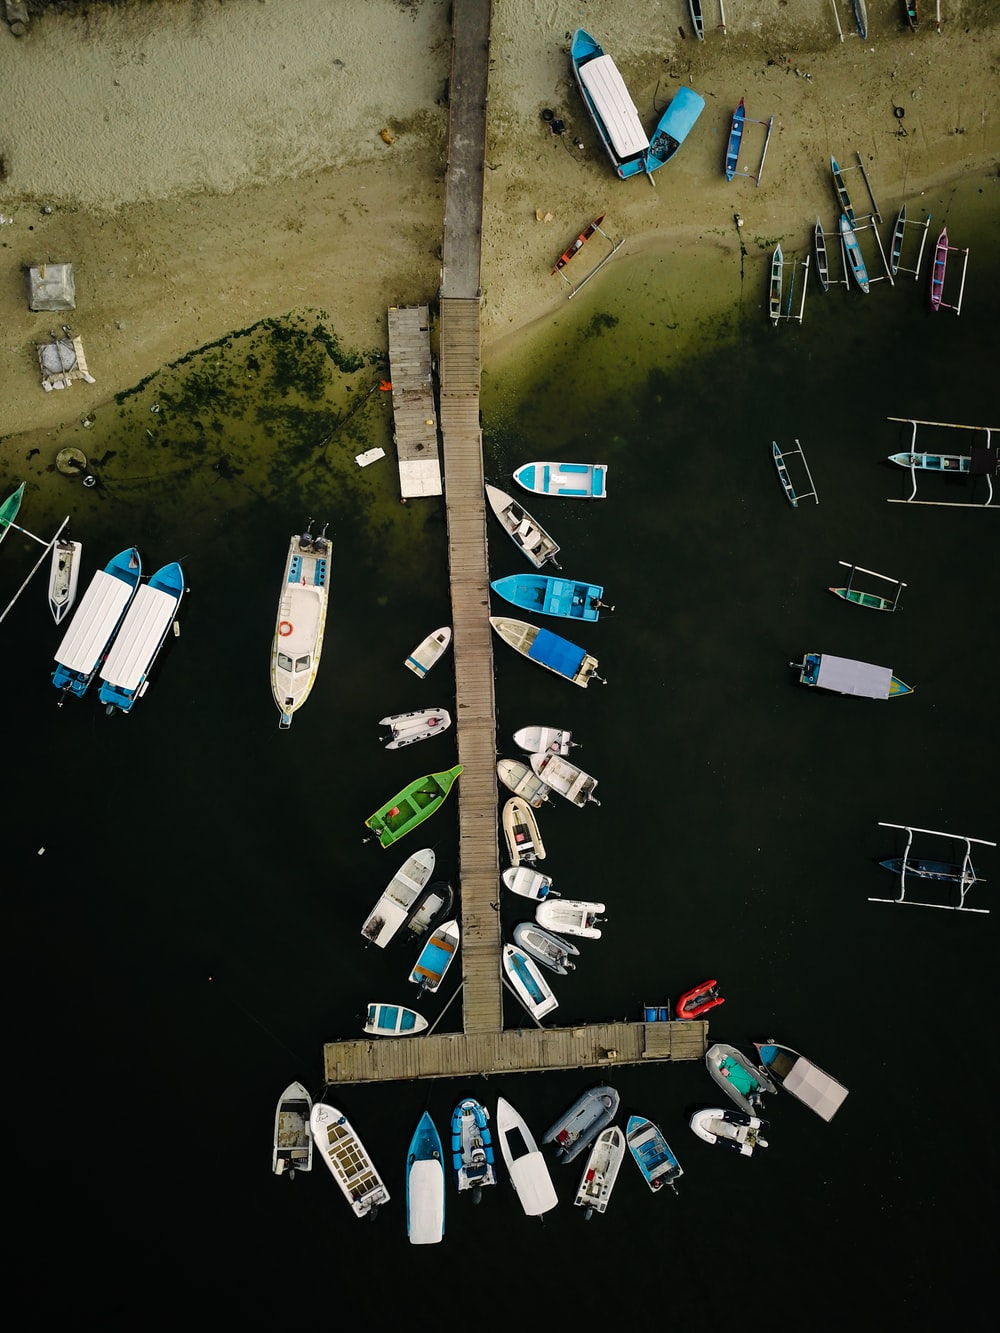 aerial view of motorboats and yachts parked on dock seashore during daytime